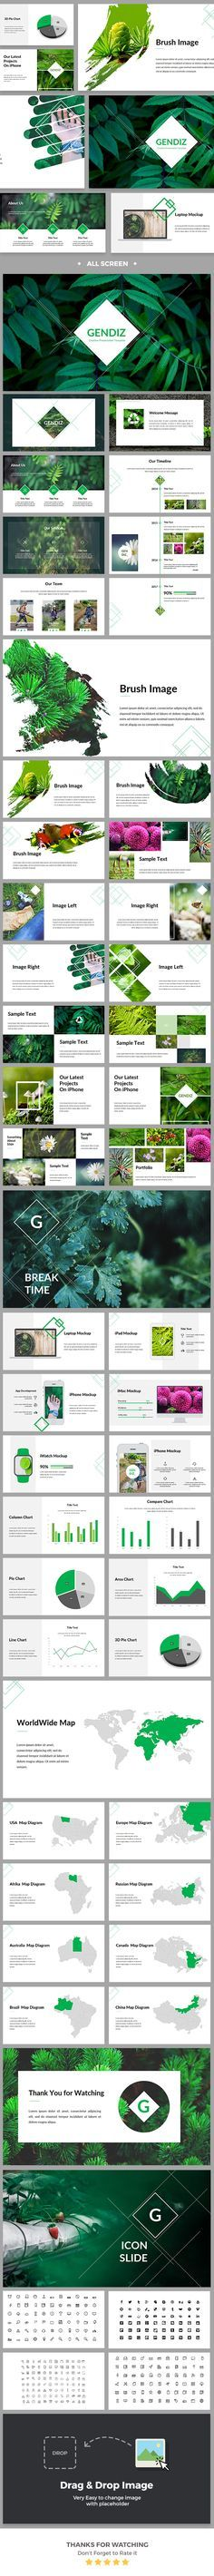 Gendiz - Powerpoint Template